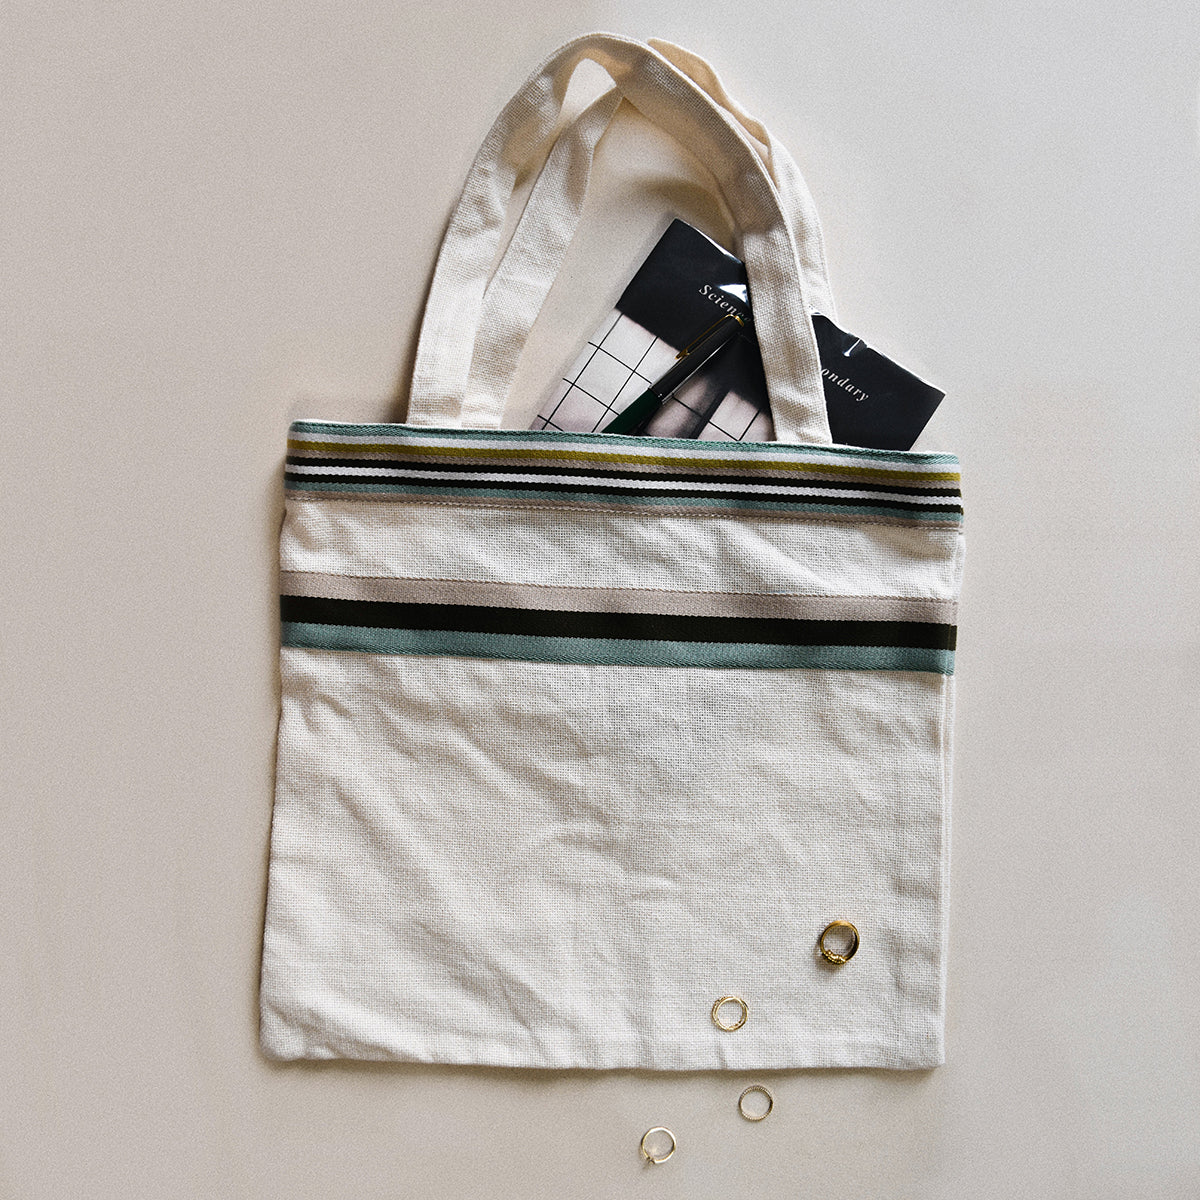 Tote bag with colored webbing | Sewing project © Singer® Hong Kong